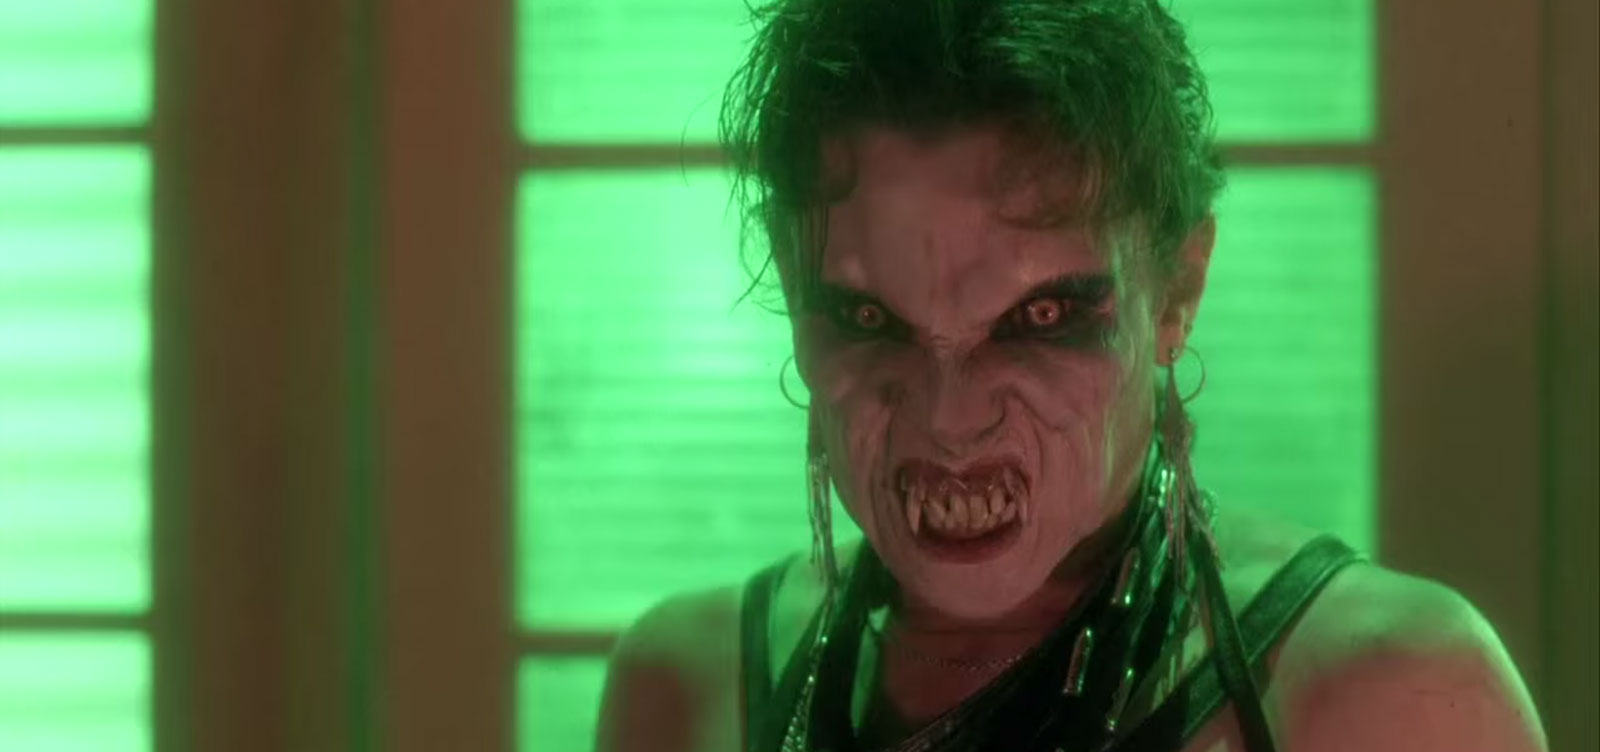 Vamp_Review_Images_01